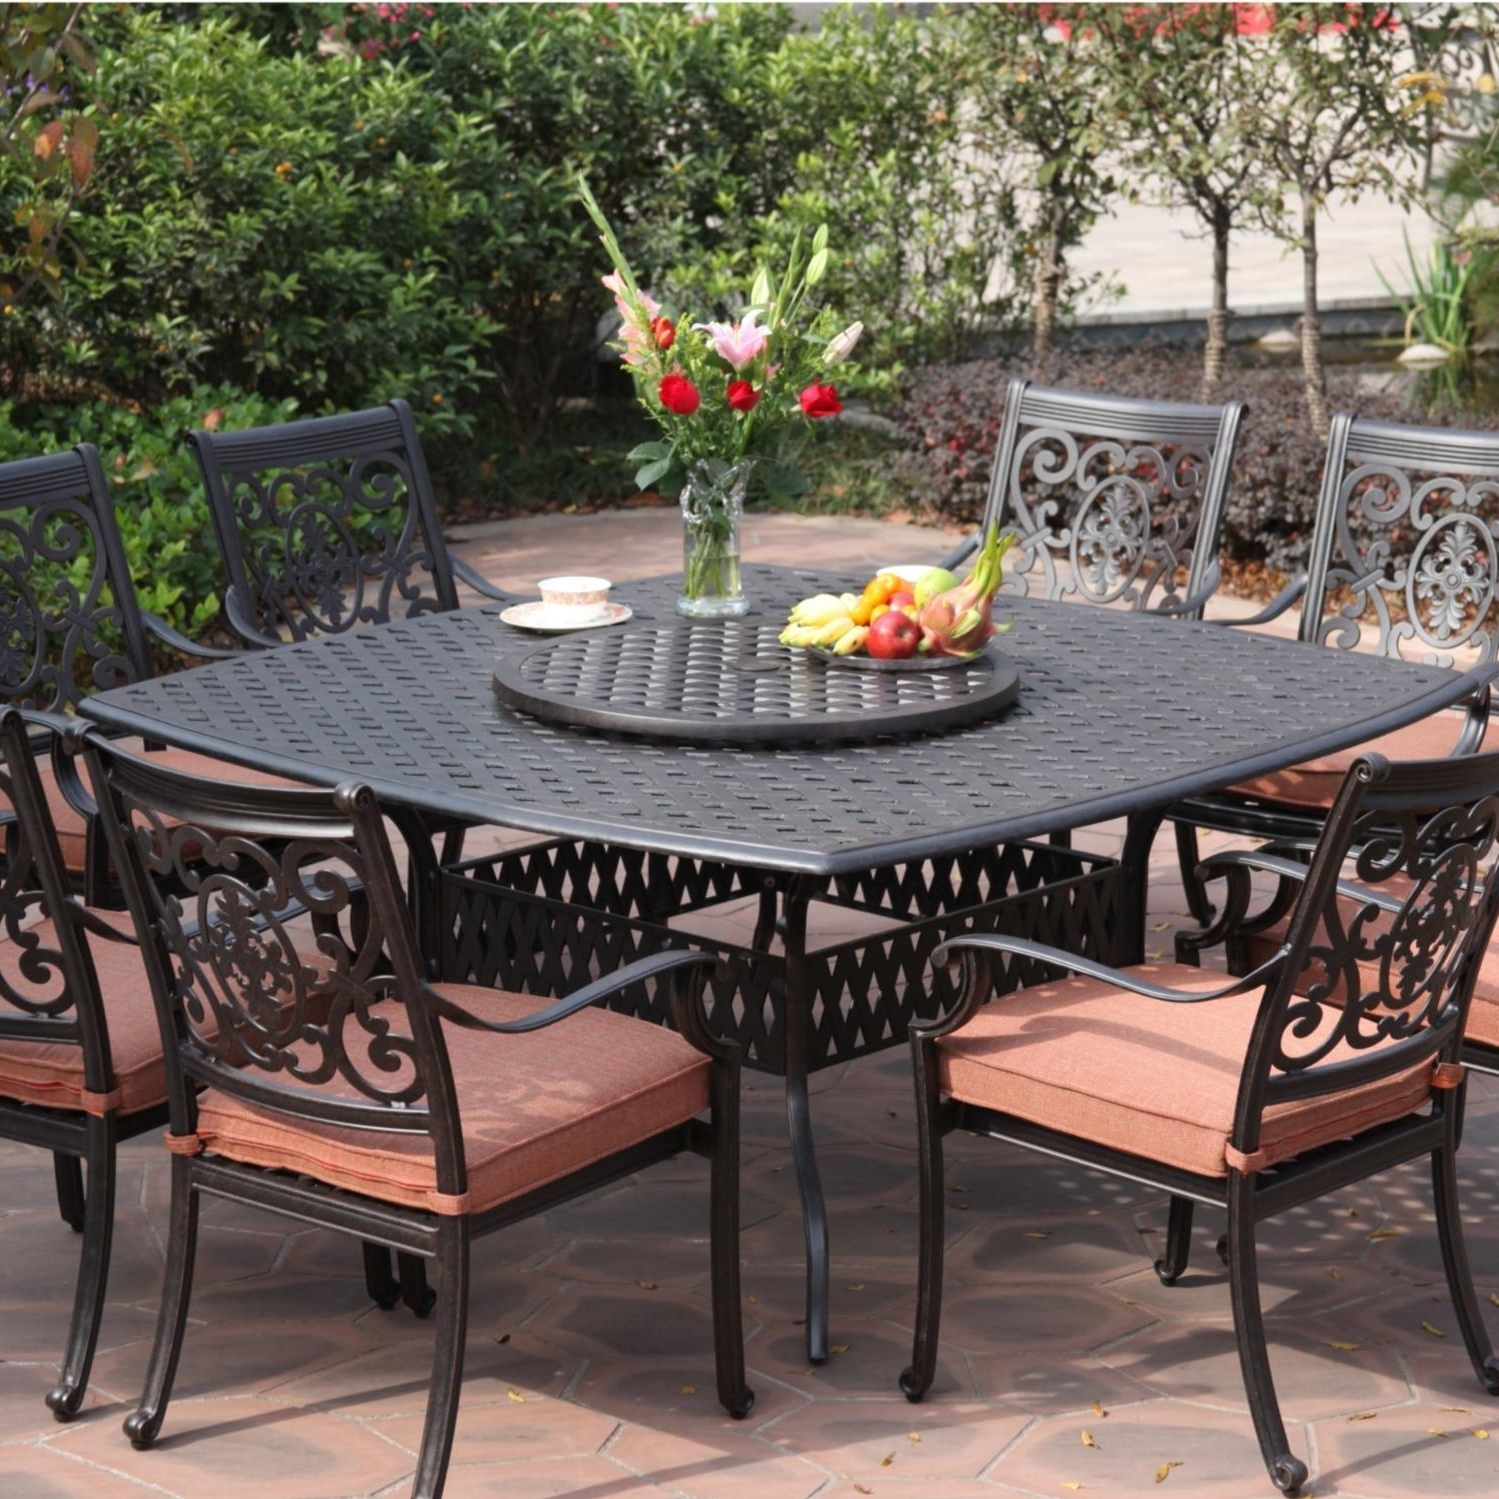 2019 Small Patio Furniture Rectangular Table With Umbrella Hole 72 Round For Small Patio Tables With Umbrellas Hole (View 1 of 20)